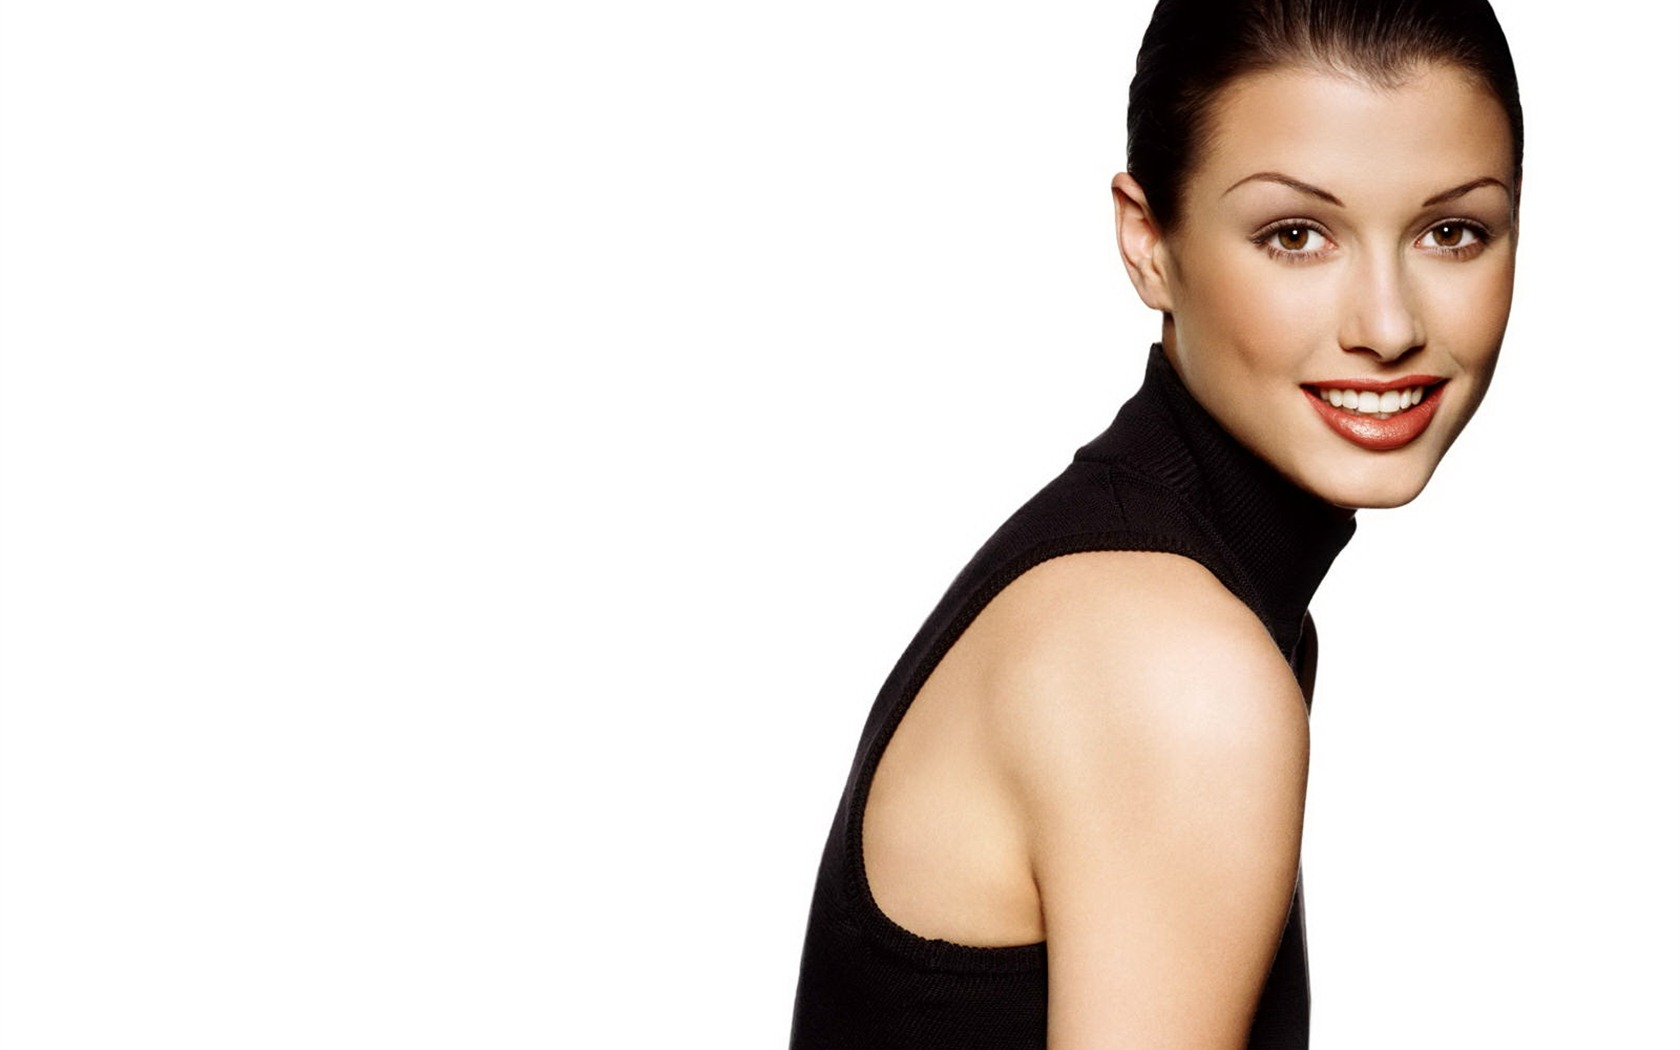 Bridget Moynahan #014 - 1680x1050 Wallpapers Pictures Photos Images